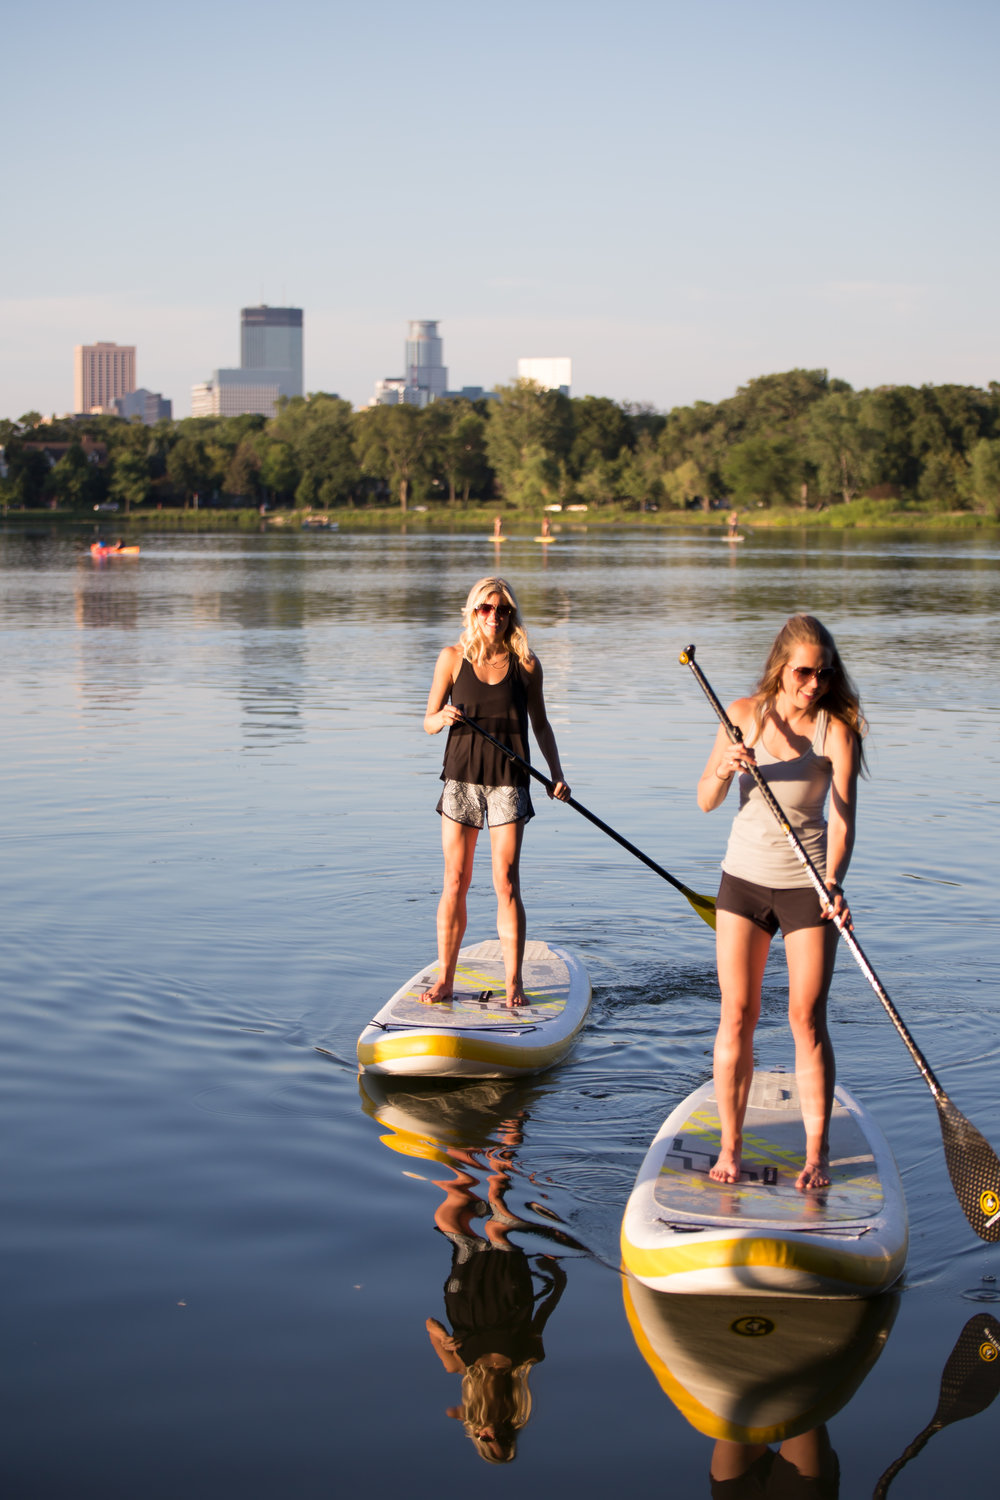 C4 Waterman     A summer of SUP! I spent the summer of 2016 taking a beautiful inflatable C4 Waterman stand up paddle board on adventures all over the midwest!